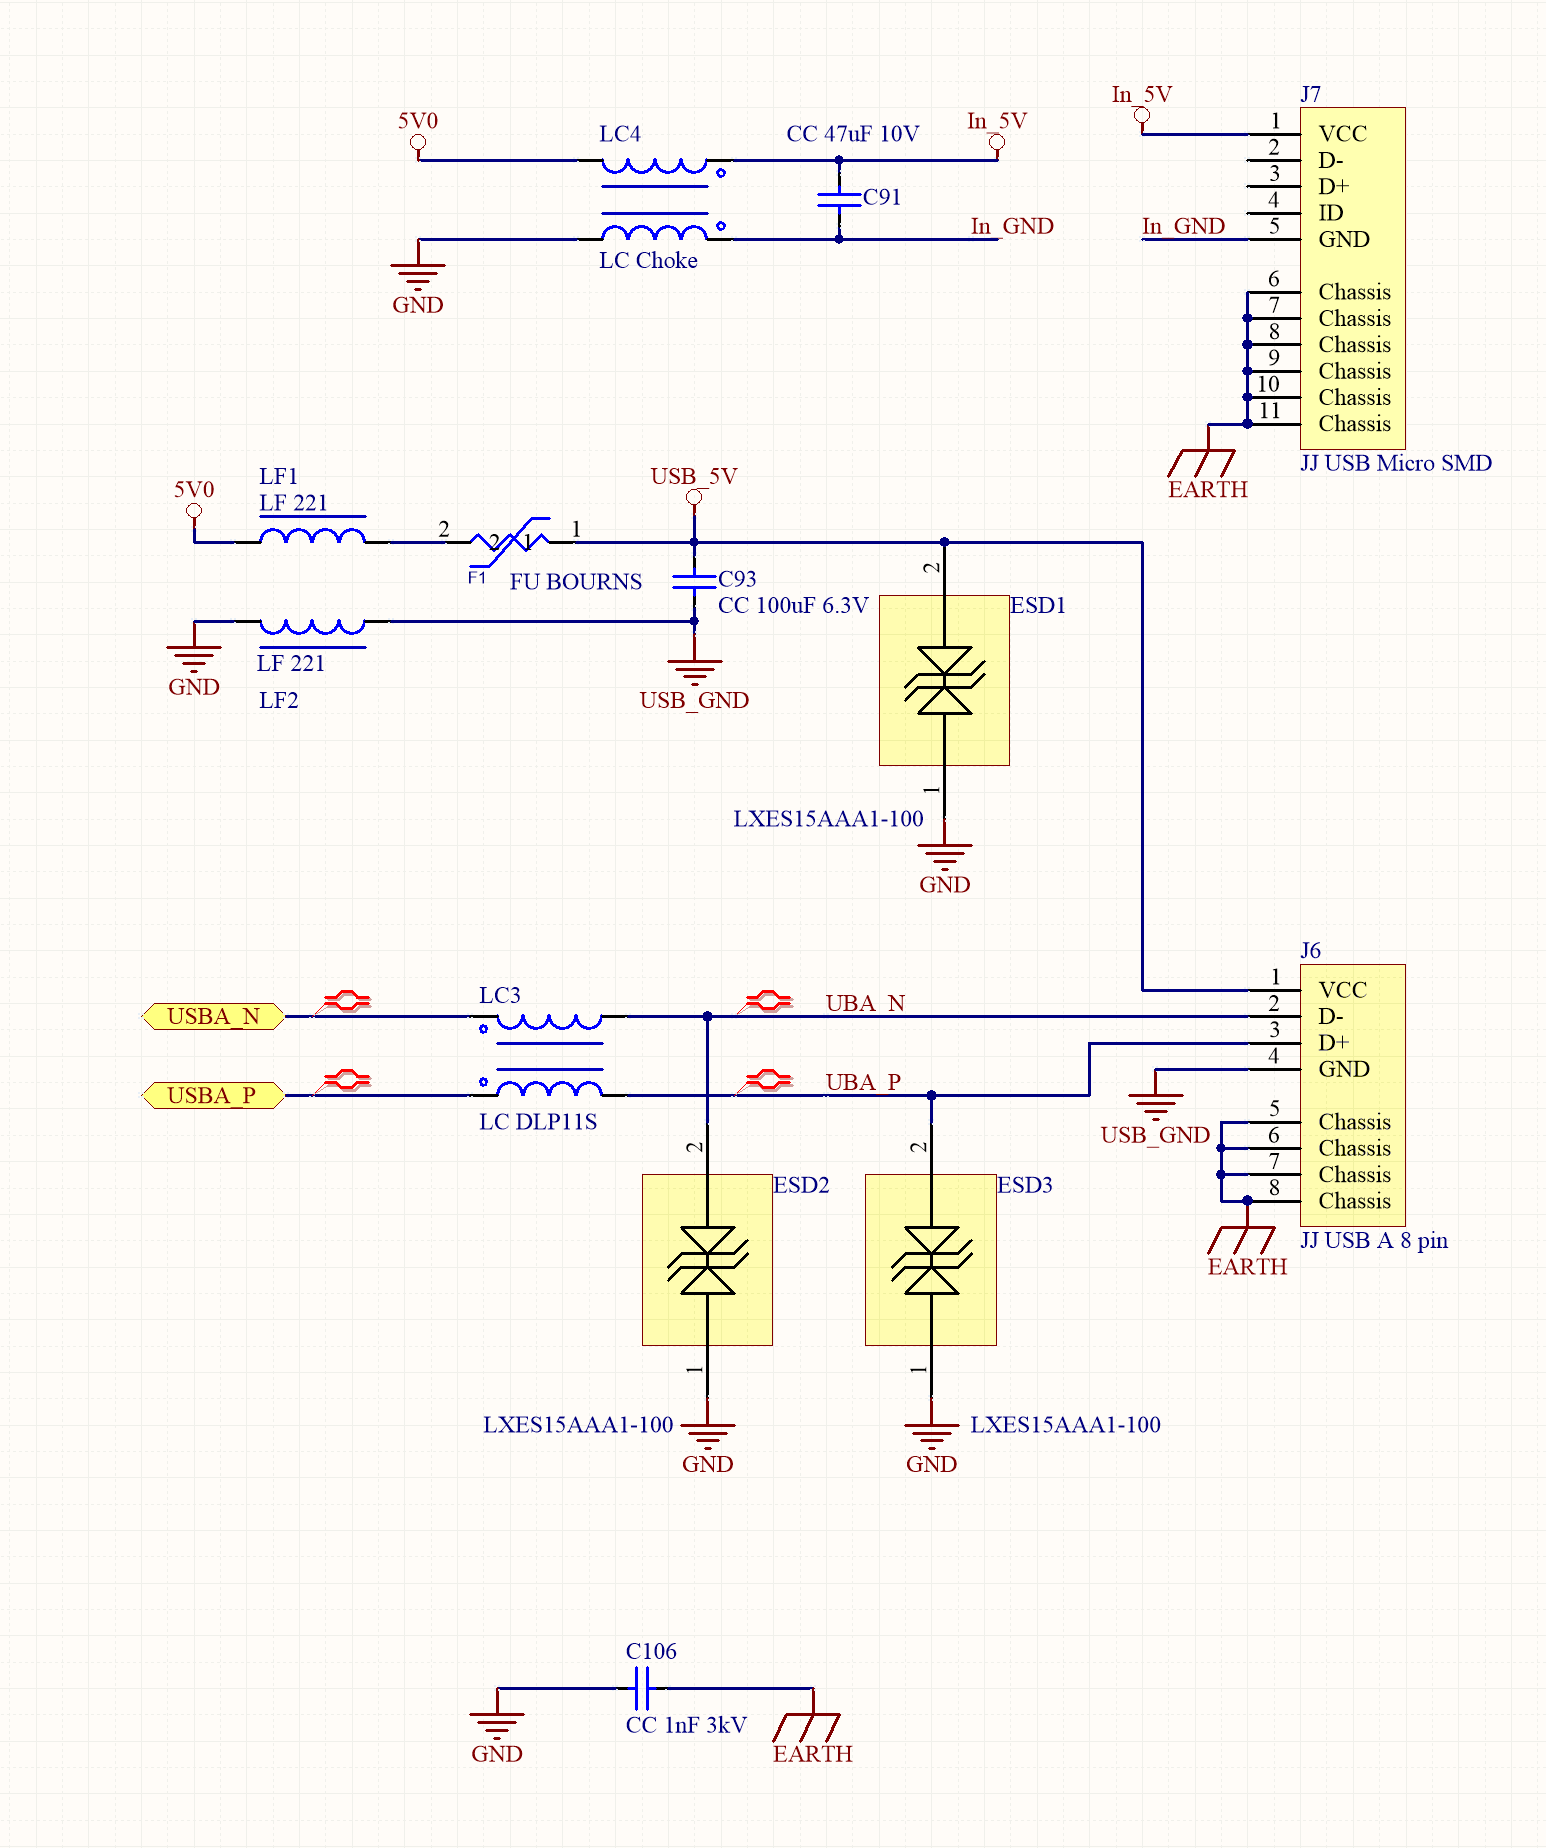 Power Micro Usb Wiring Diagram from www.acmesystems.it